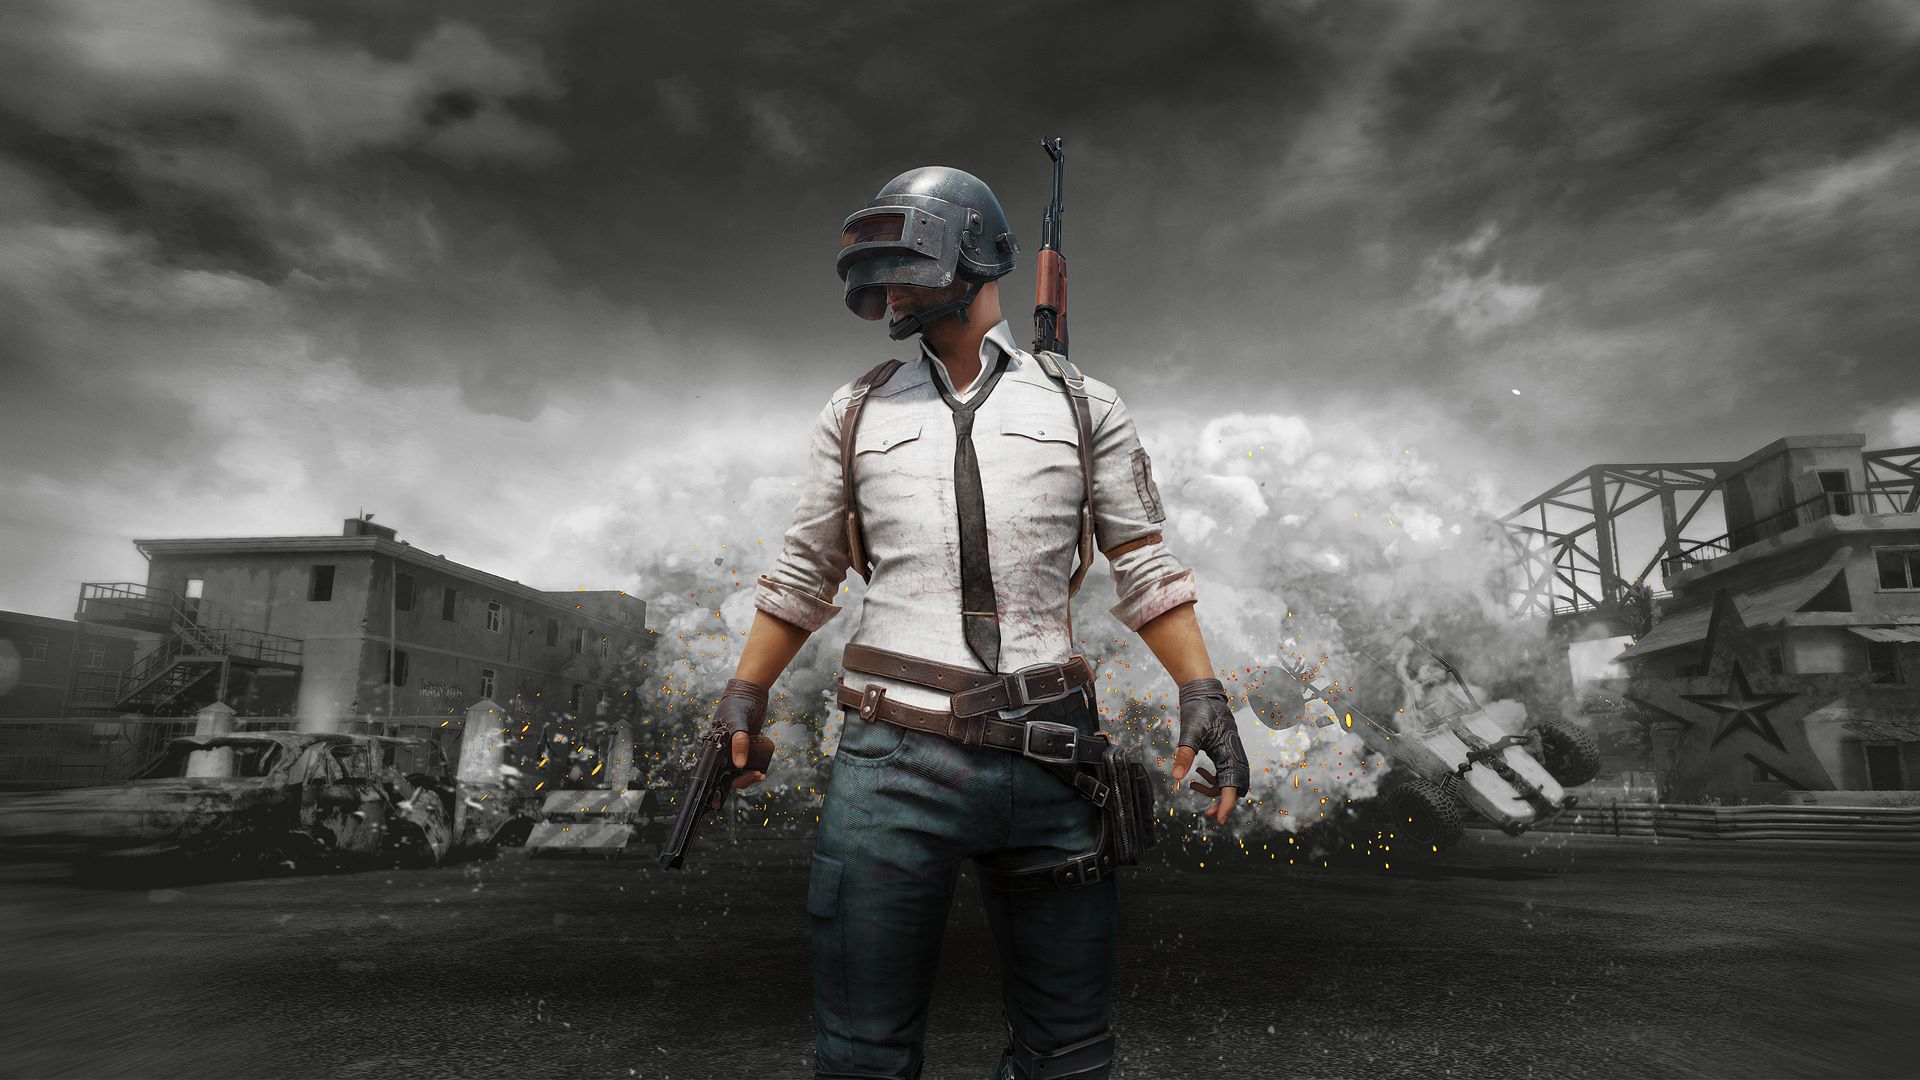 Pubg Lite Hd: PUBG Lite Is A Bespoke New Version For Low-spec Computers